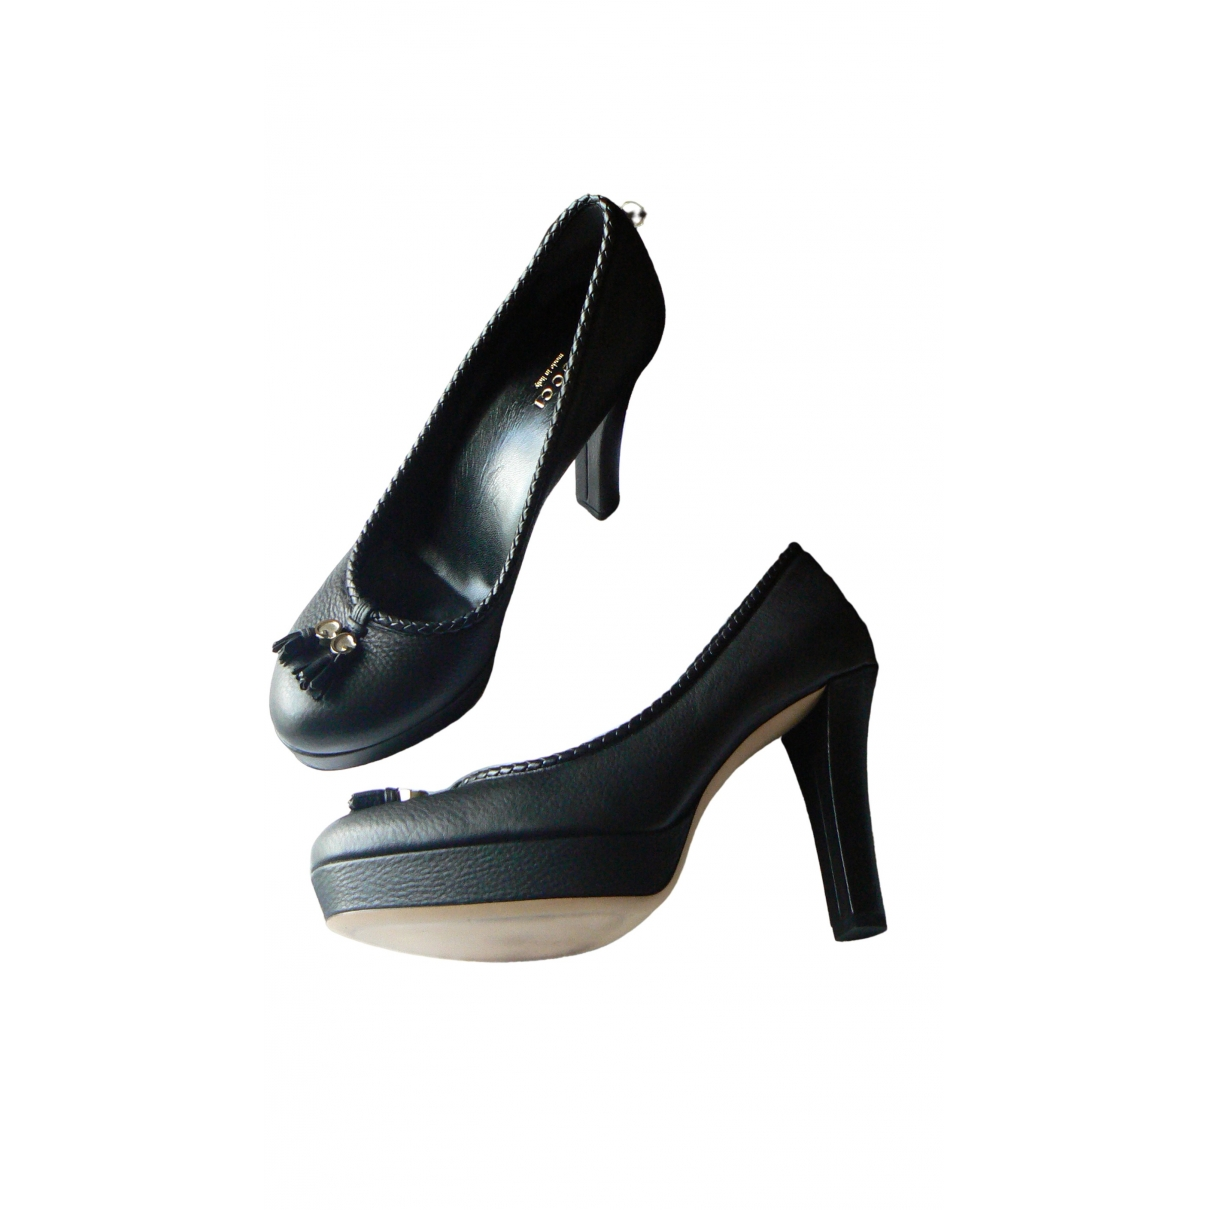 Gucci \N Black Leather Heels for Women 38 EU